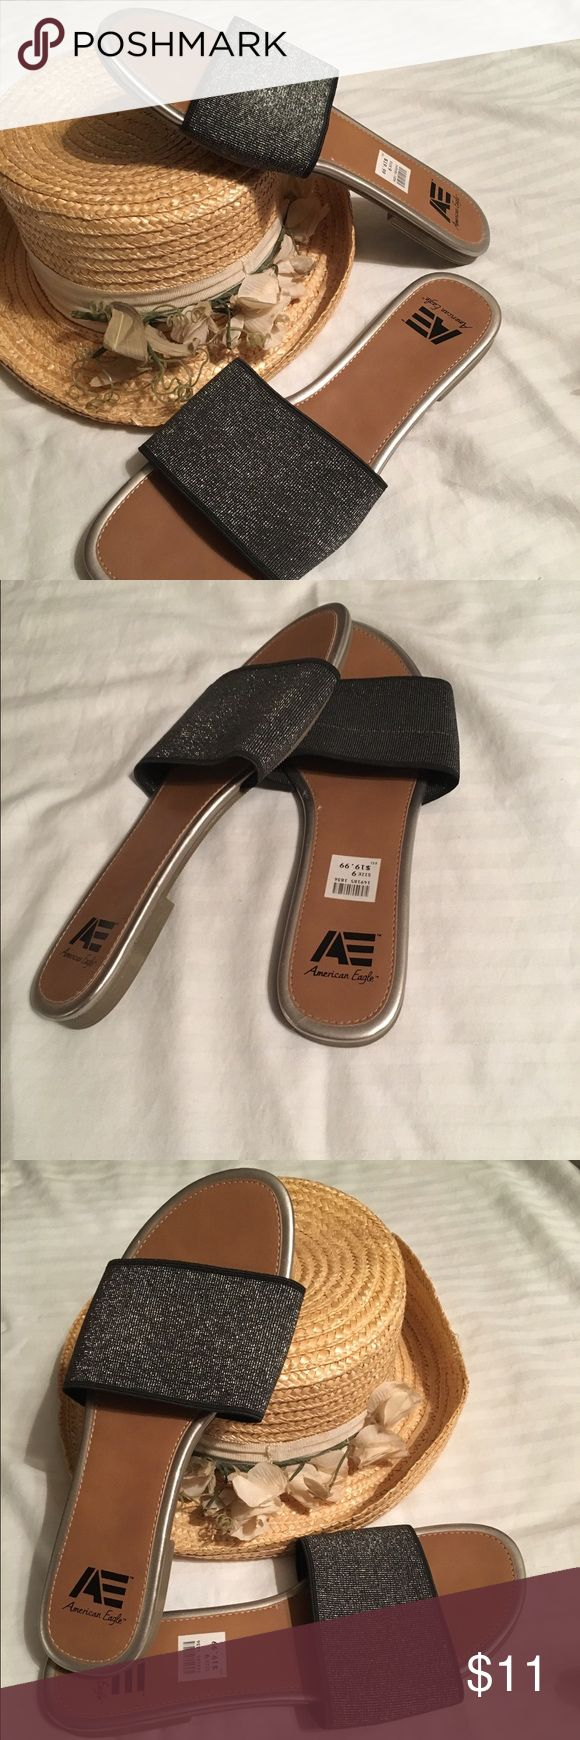 NWT American Eagle Black Sparkly Slide Sandles 9 New with tags Women's American Eagle black Sparkly sandles are size 9. Sandles have Tan insoles and outsoles. Insoles are trimmed in gray. Fabric upper balance man made materials. They are flat with no arch support. American Eagle by Payless Shoes Sandals